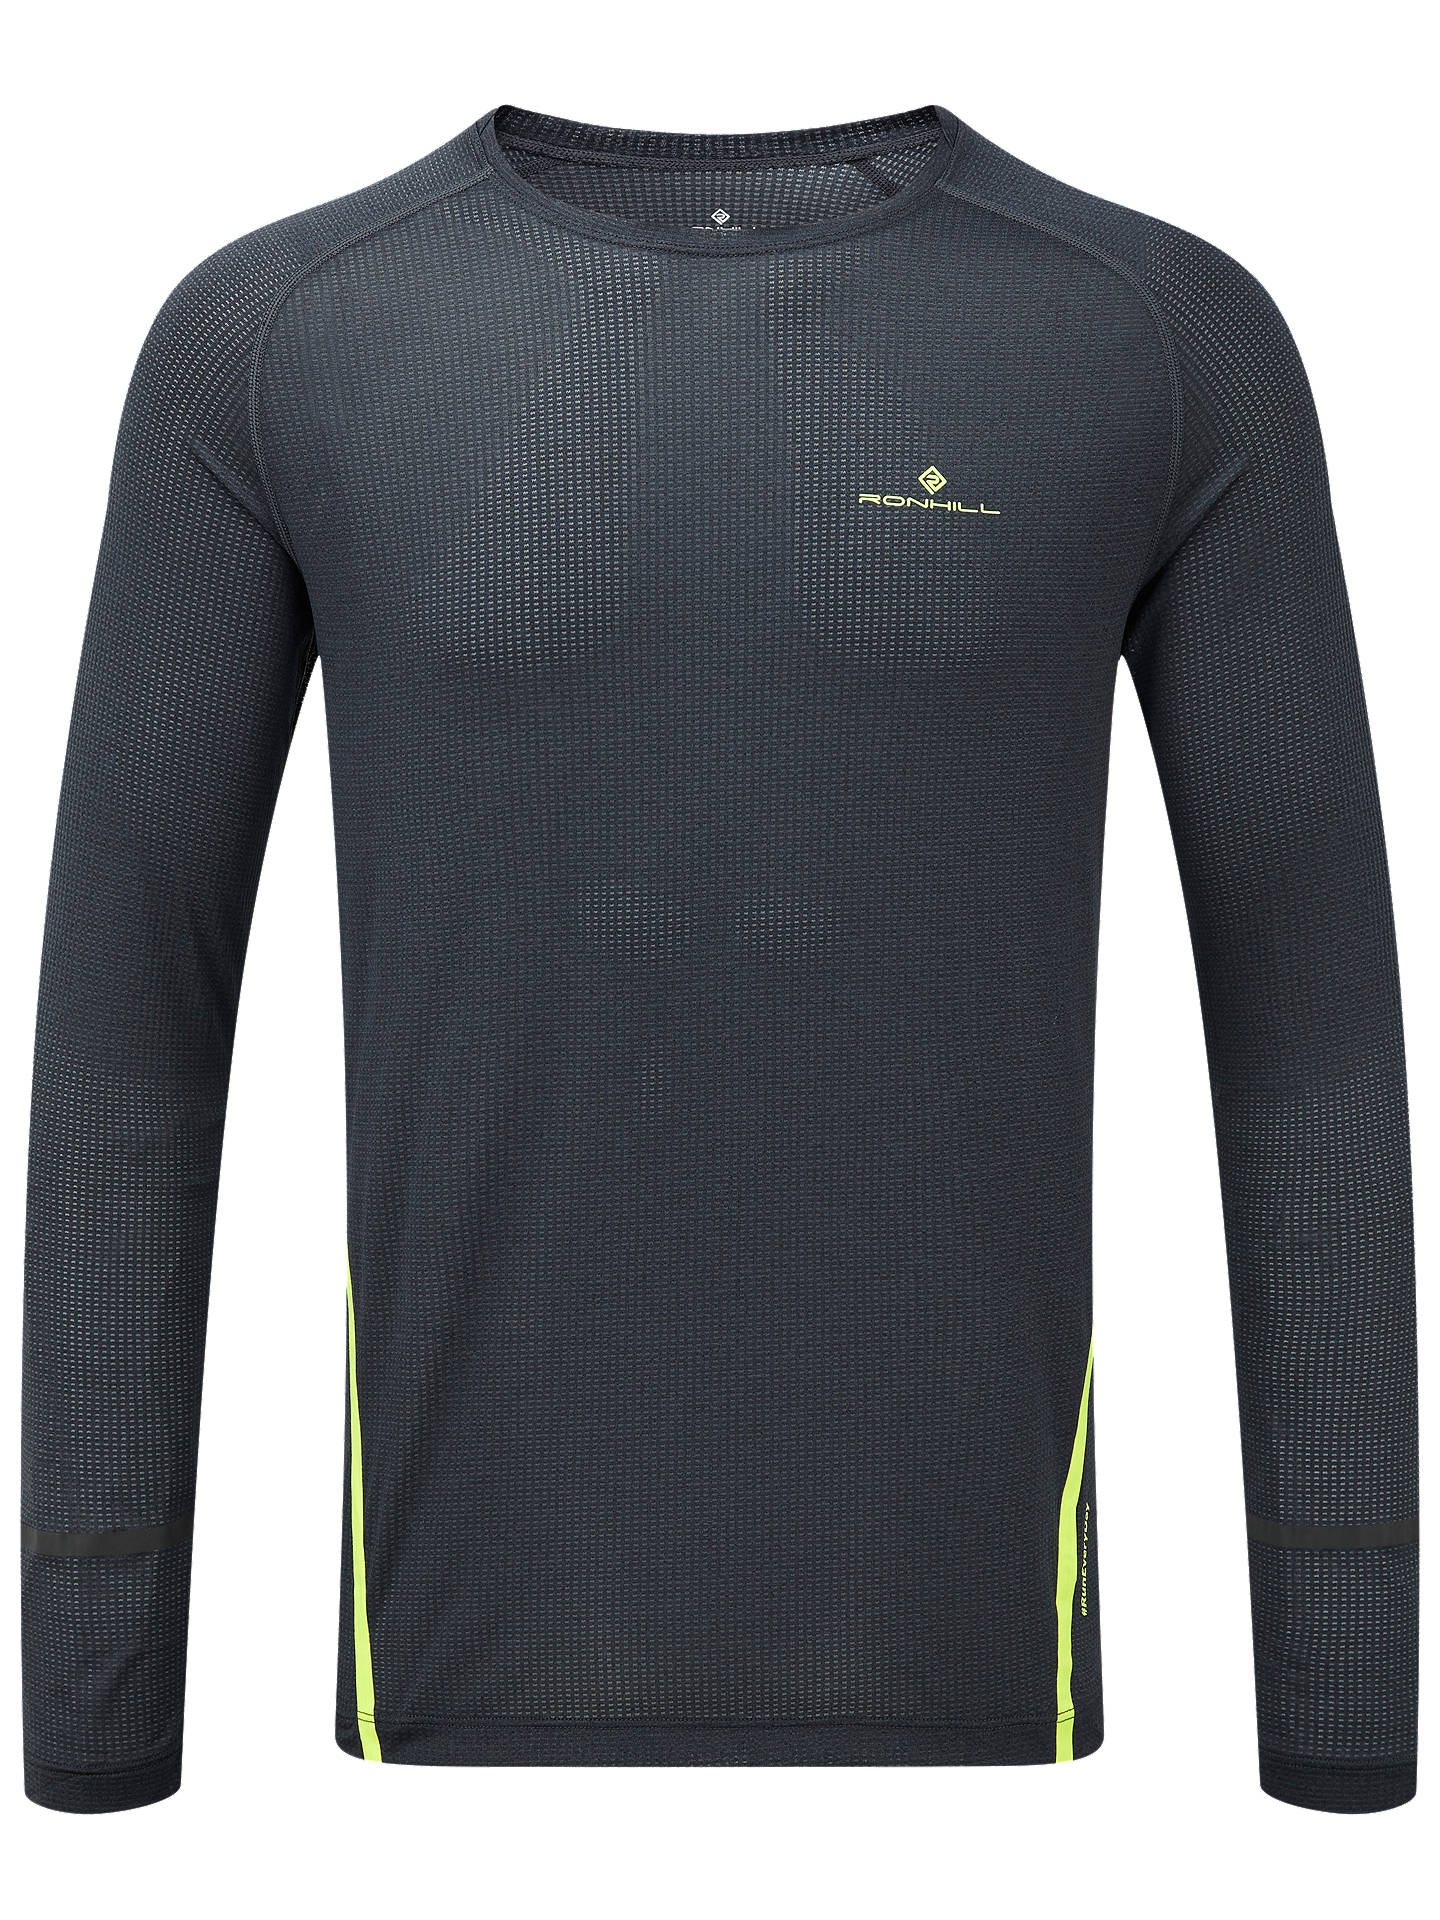 Buy Ronhill Stride Long Sleeve Running Top, Charcoal/Fluorescent Yellow, S Online at johnlewis.com